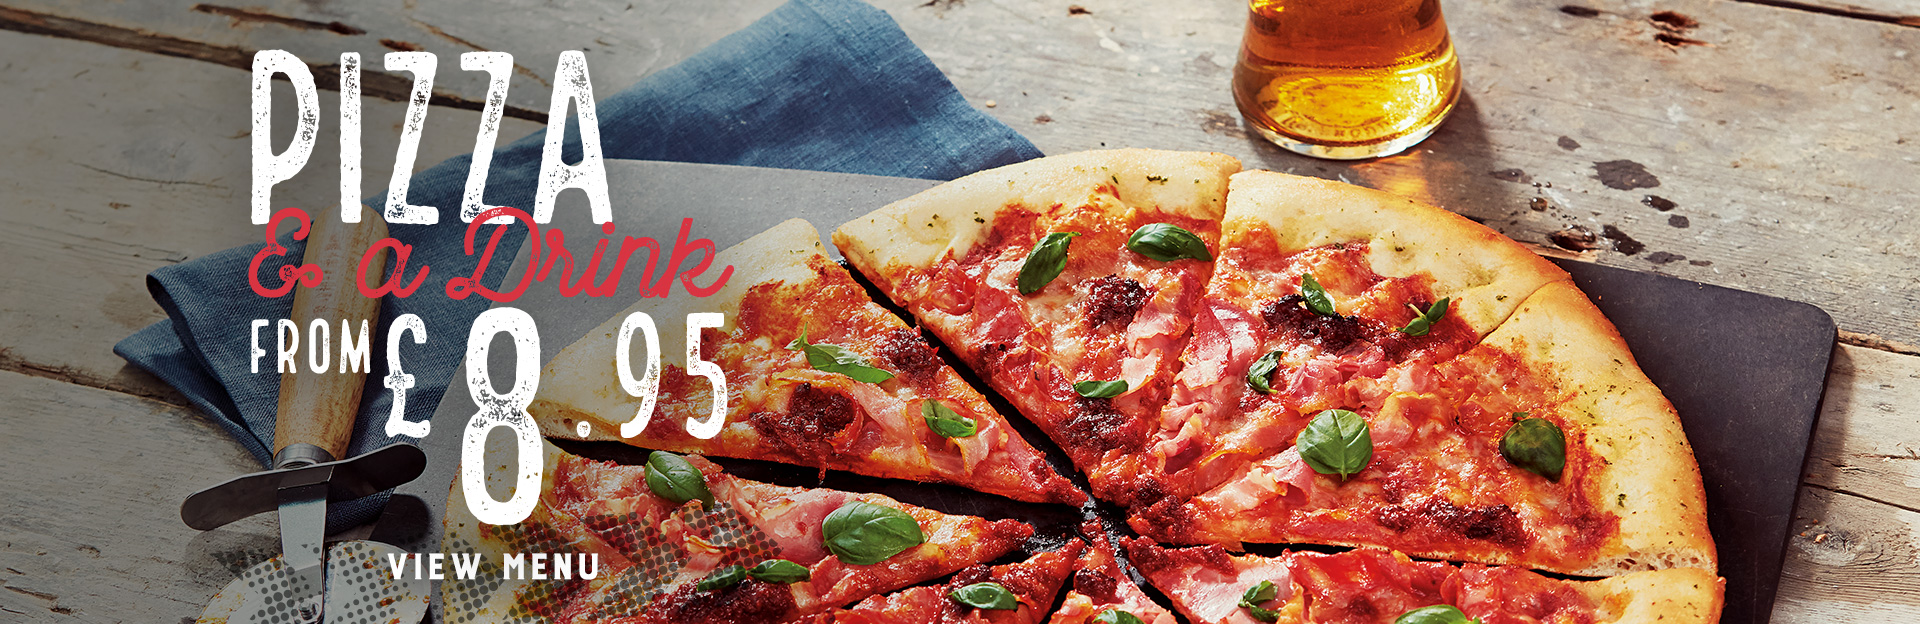 Pizza and Drink offer